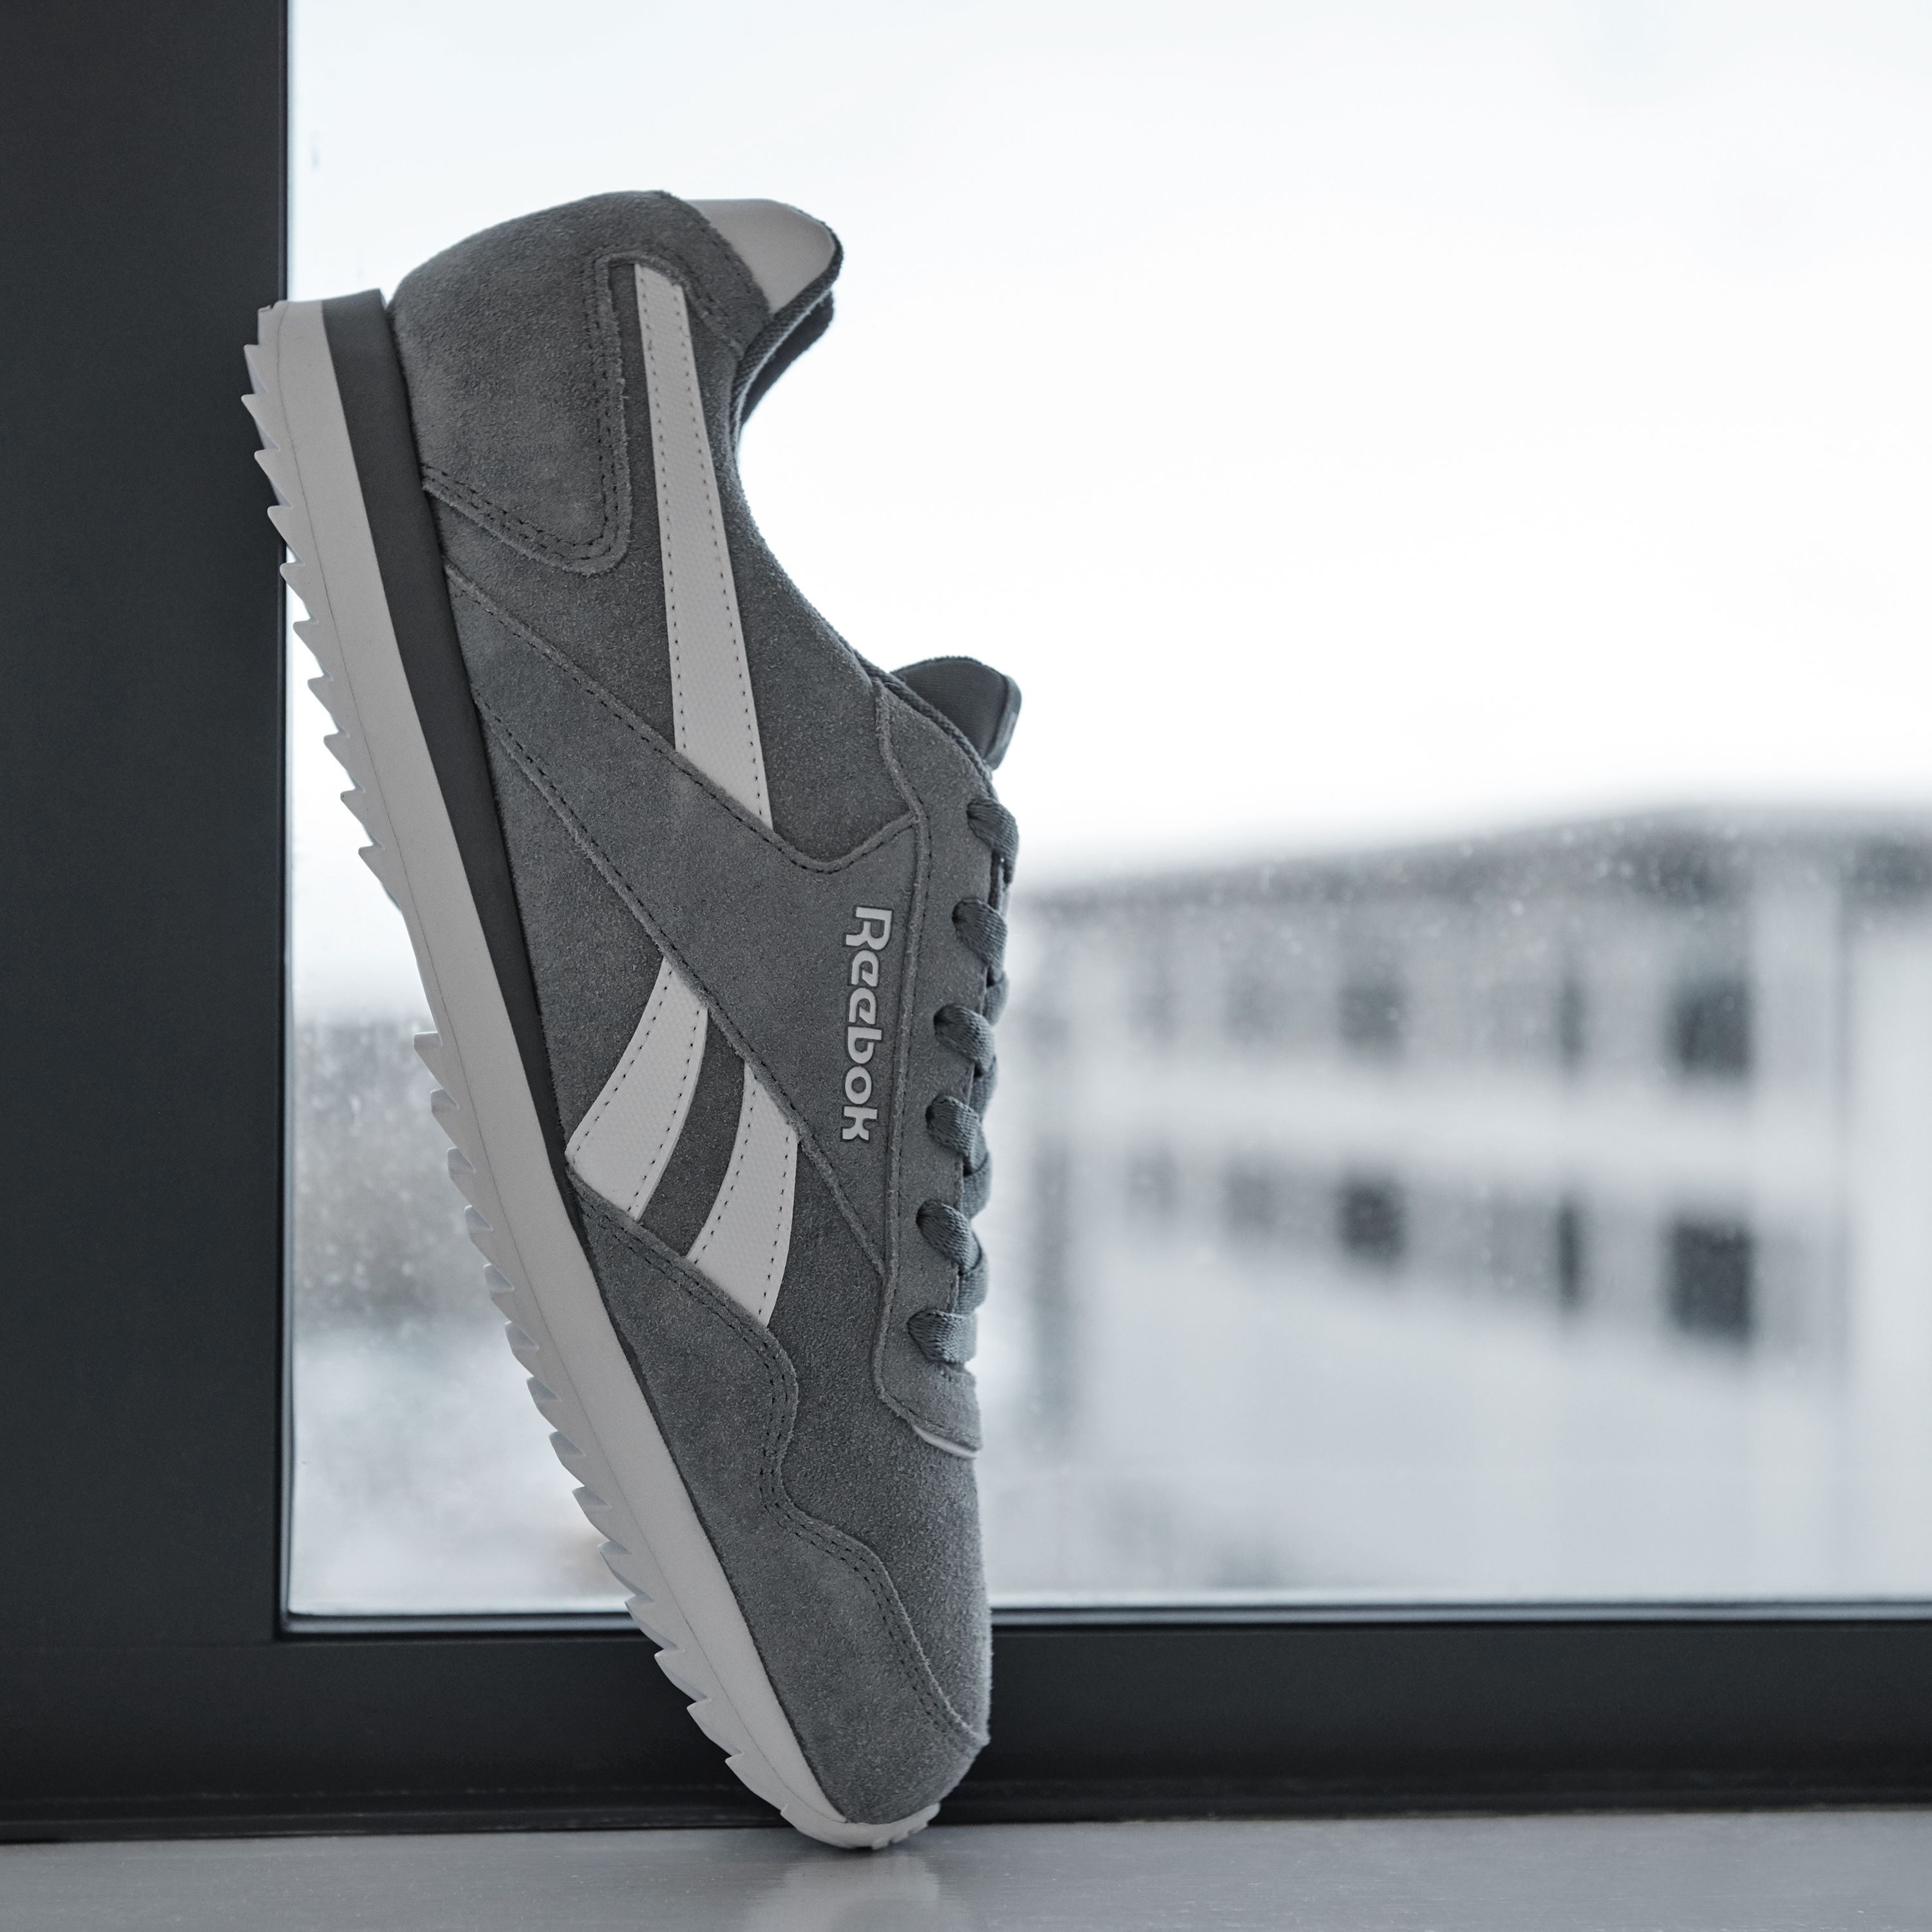 509e8e309e98b6 Glide your way through everything that comes your way with the Reebok Royal  Glide Ripple Suede